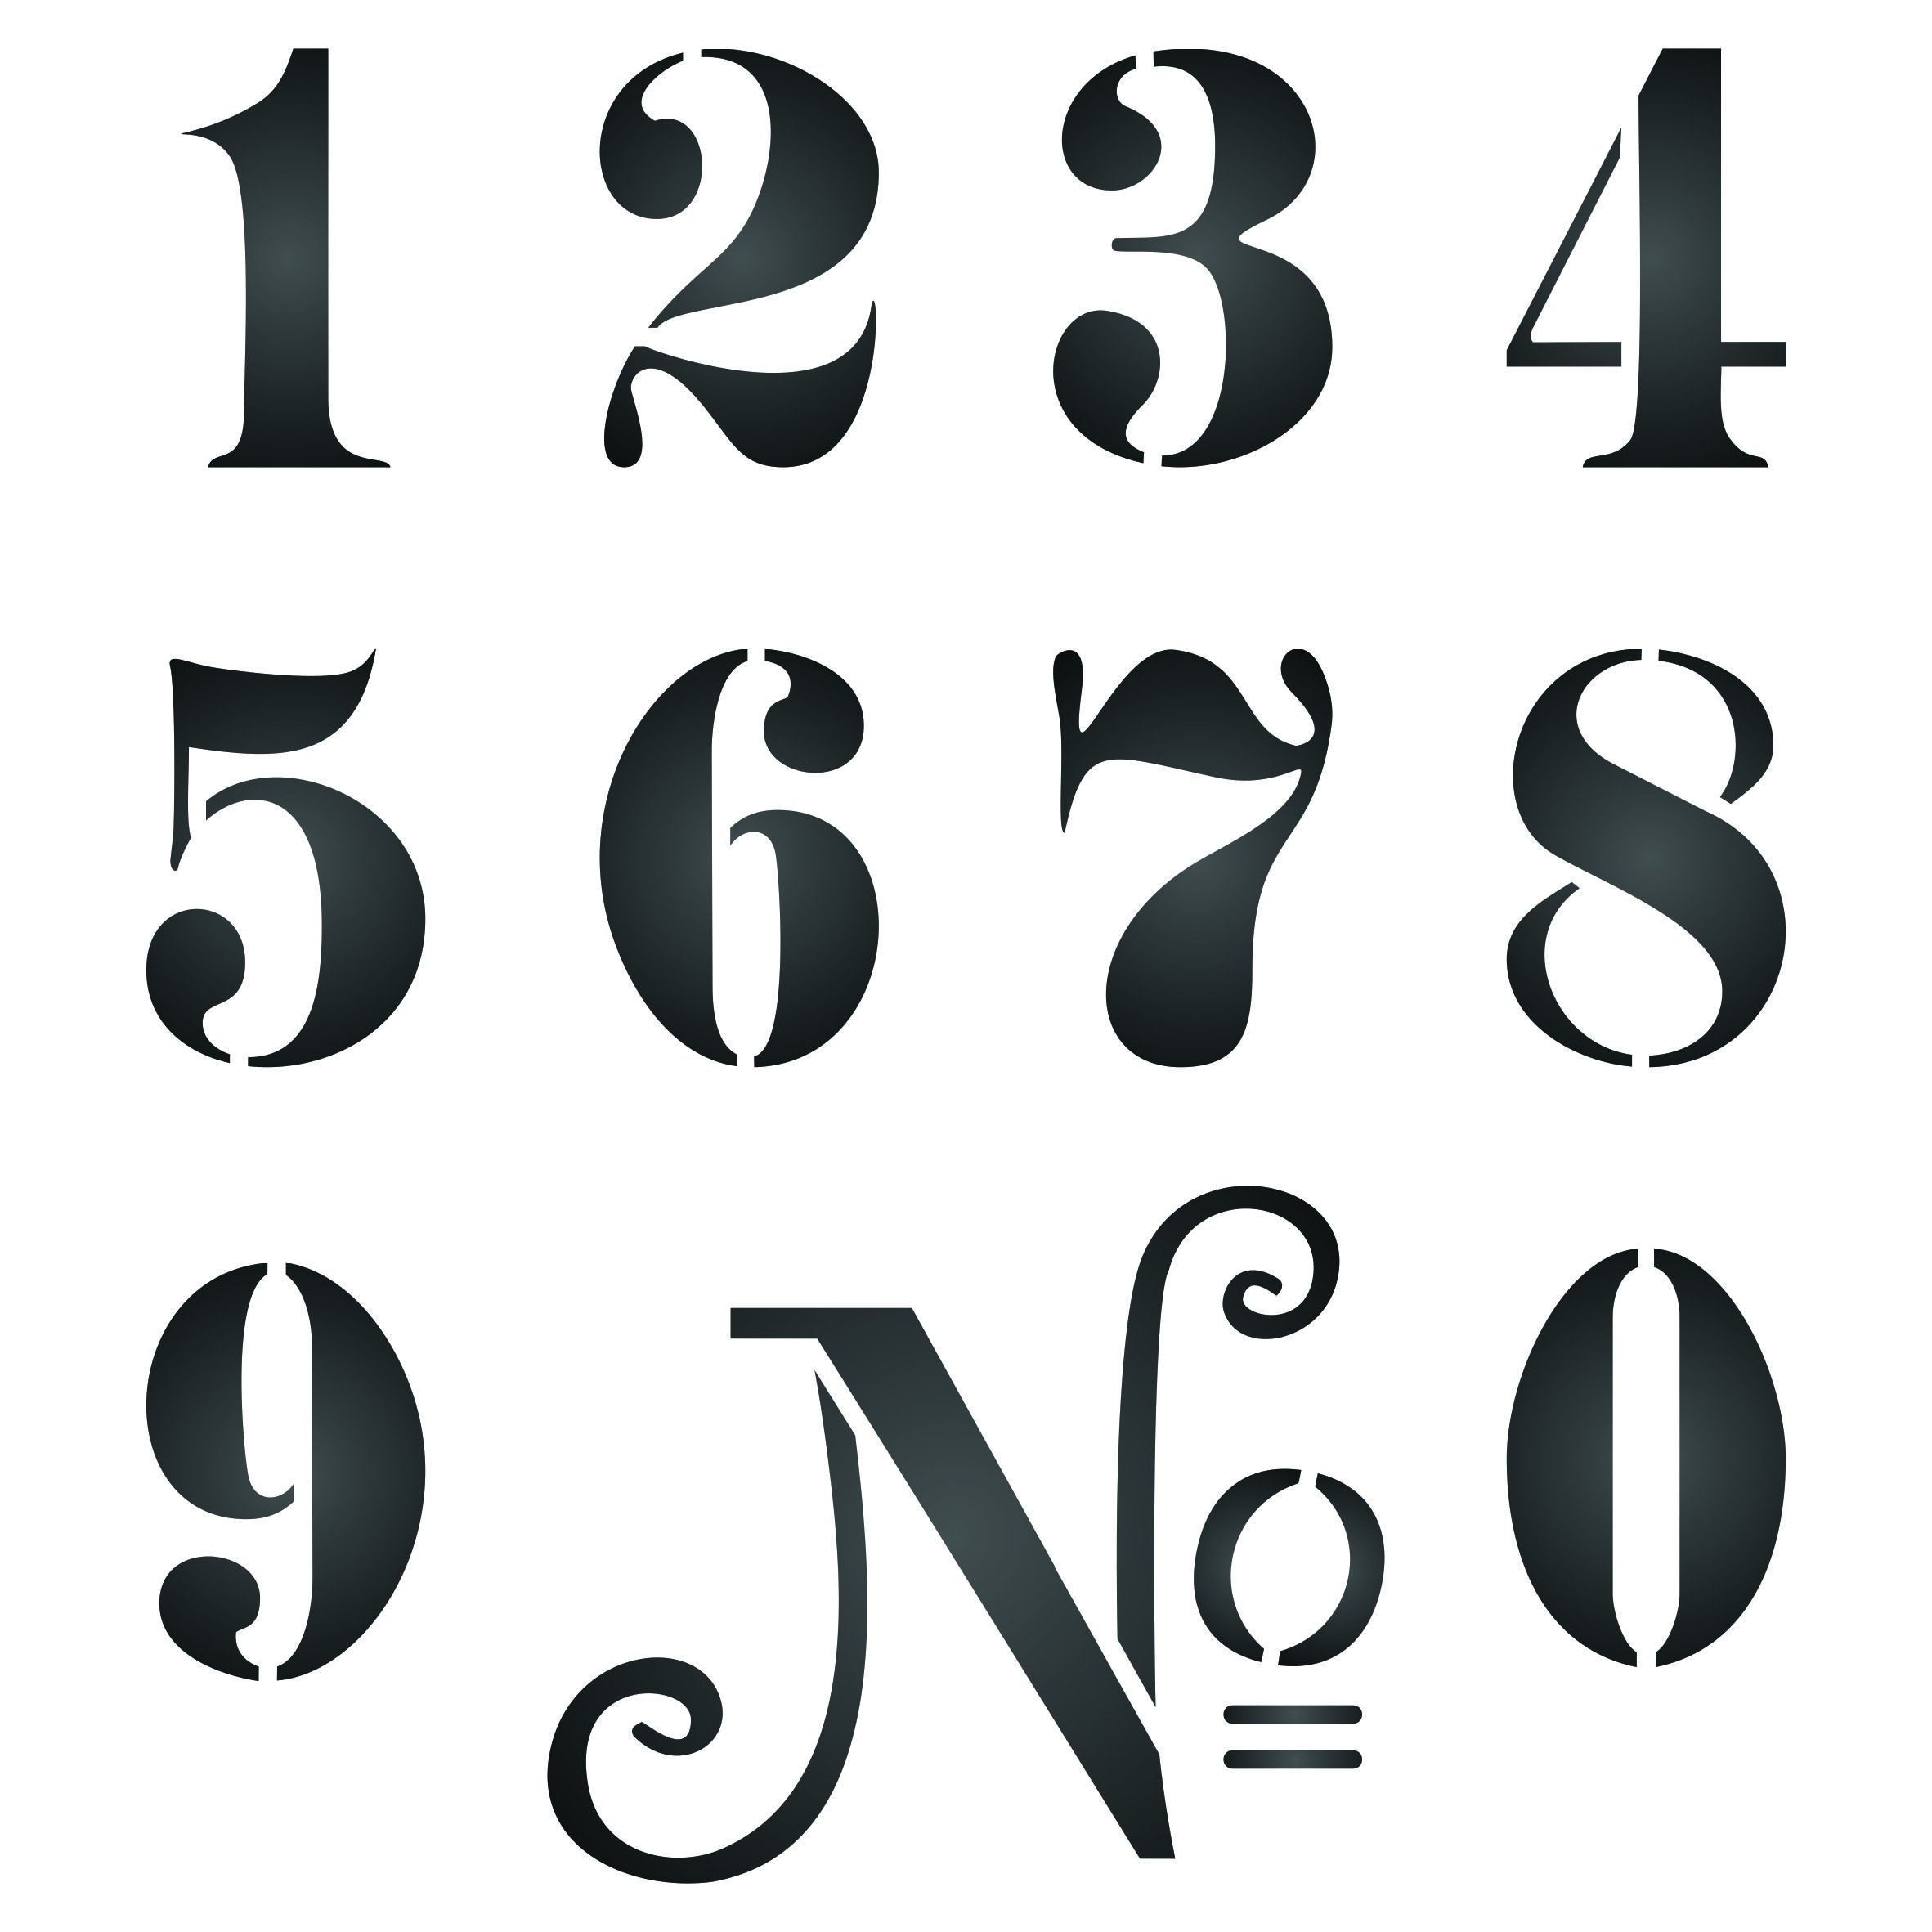 3'' French Numbers Stencil (L) - Reusable Vintage French Themed Word Wall Stencils for Painting - Use on Paper Projects Scrapbook Journal Walls Floors Fabric Furniture Glass Wood etc.